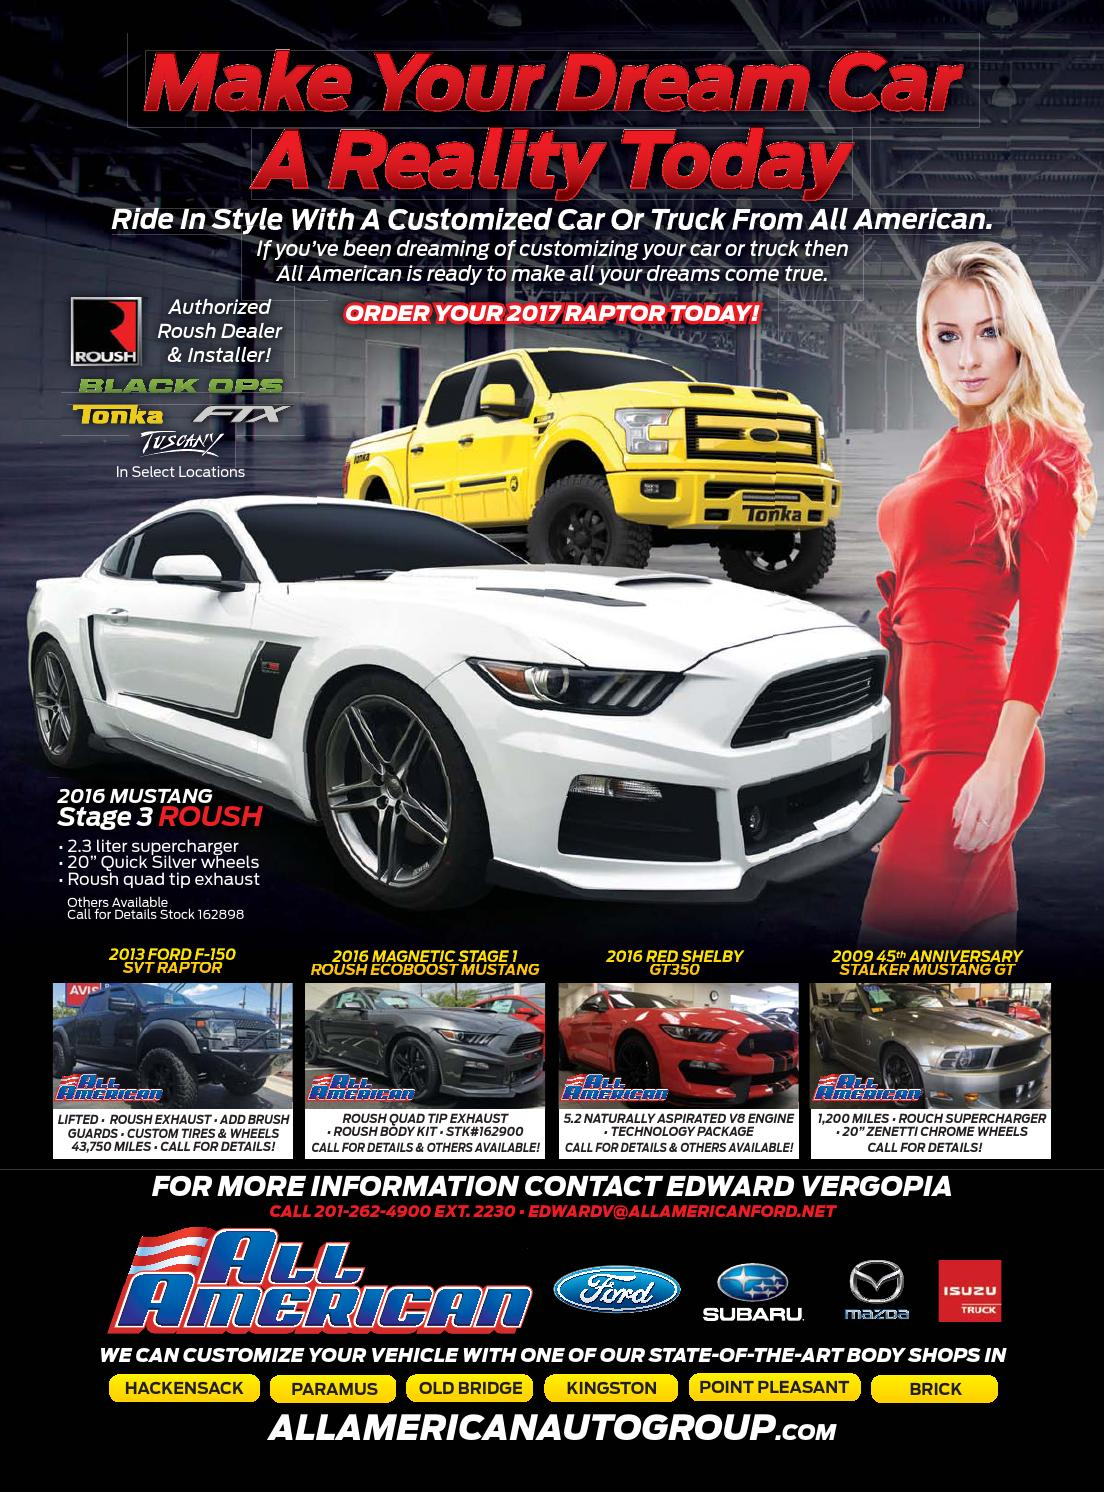 duPontREGISTRY Autos July 2016 by duPont REGISTRY - issuu